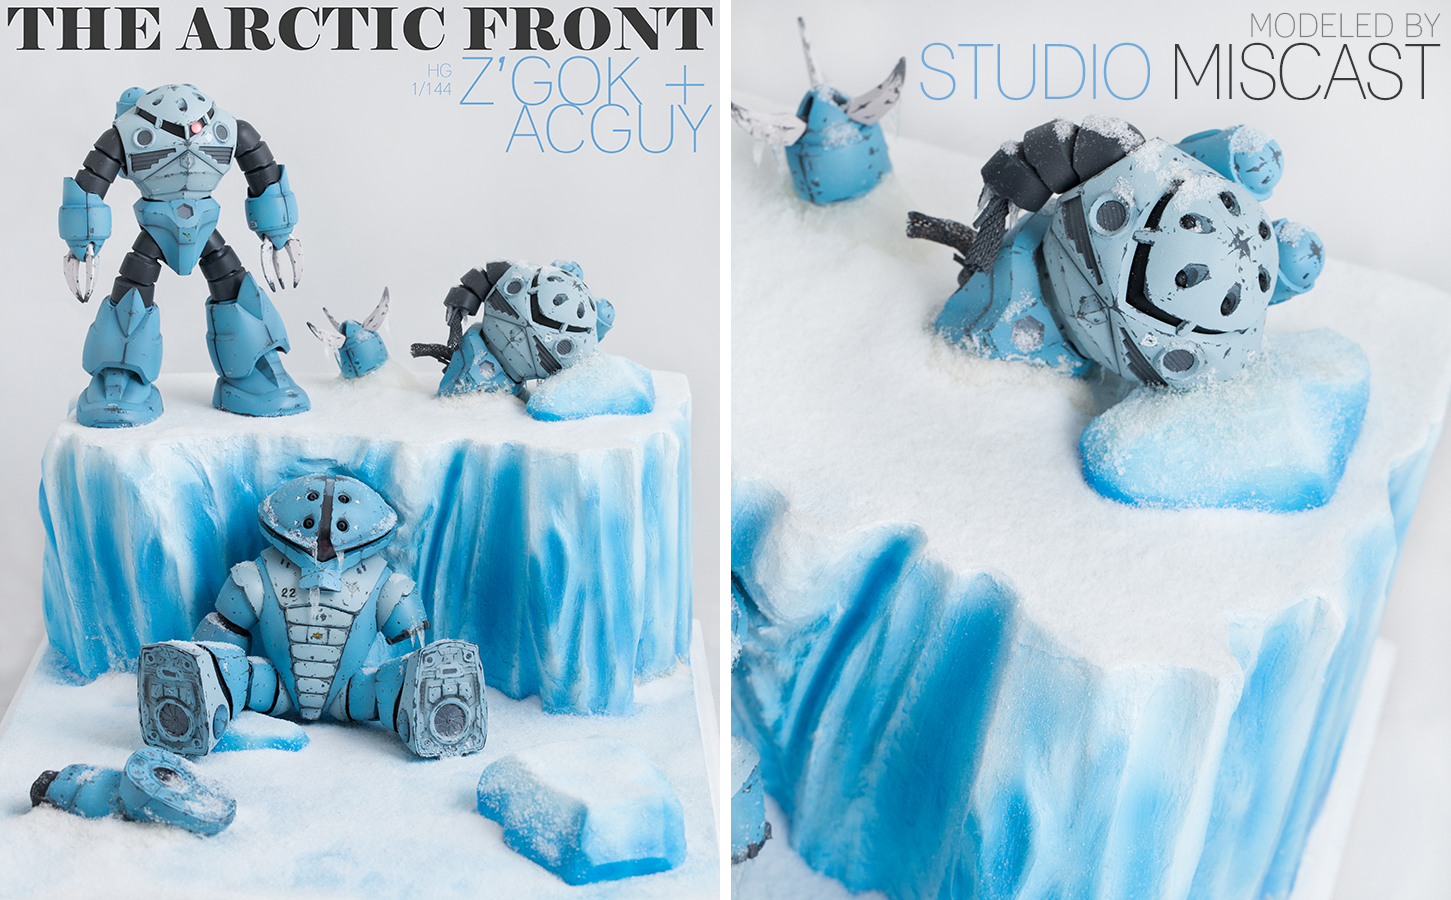 The Arctic Front Diorama - Hot Wire Foam Factory